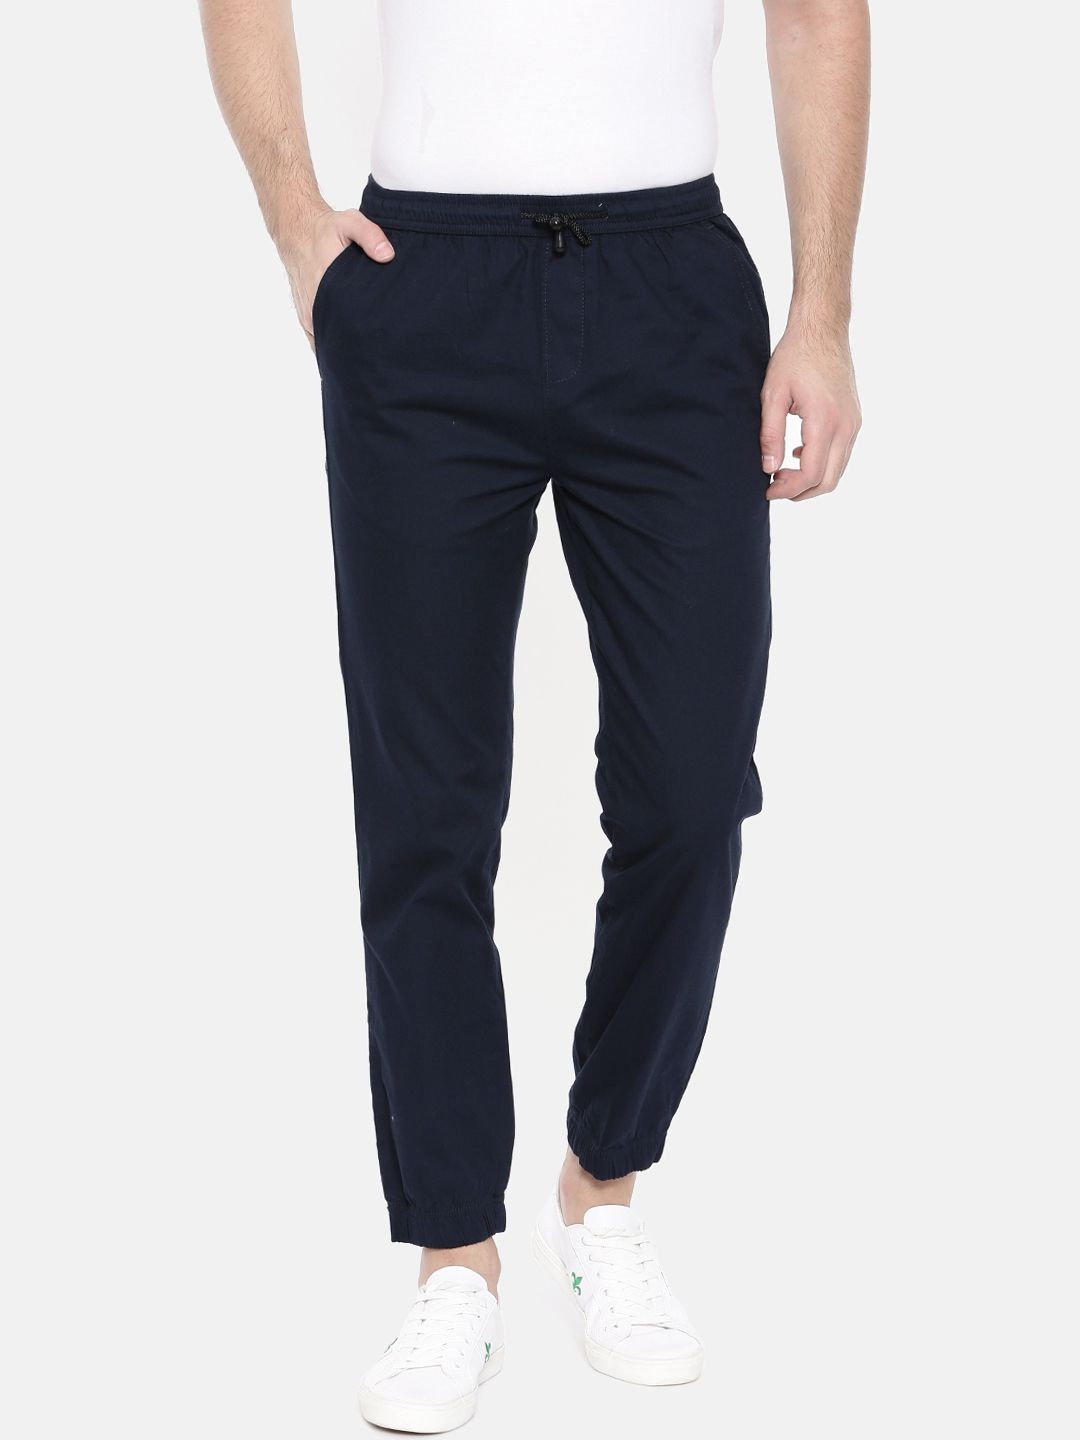 The Indian Garage Co. Navy Blue Slim -Fit Flat Joggers